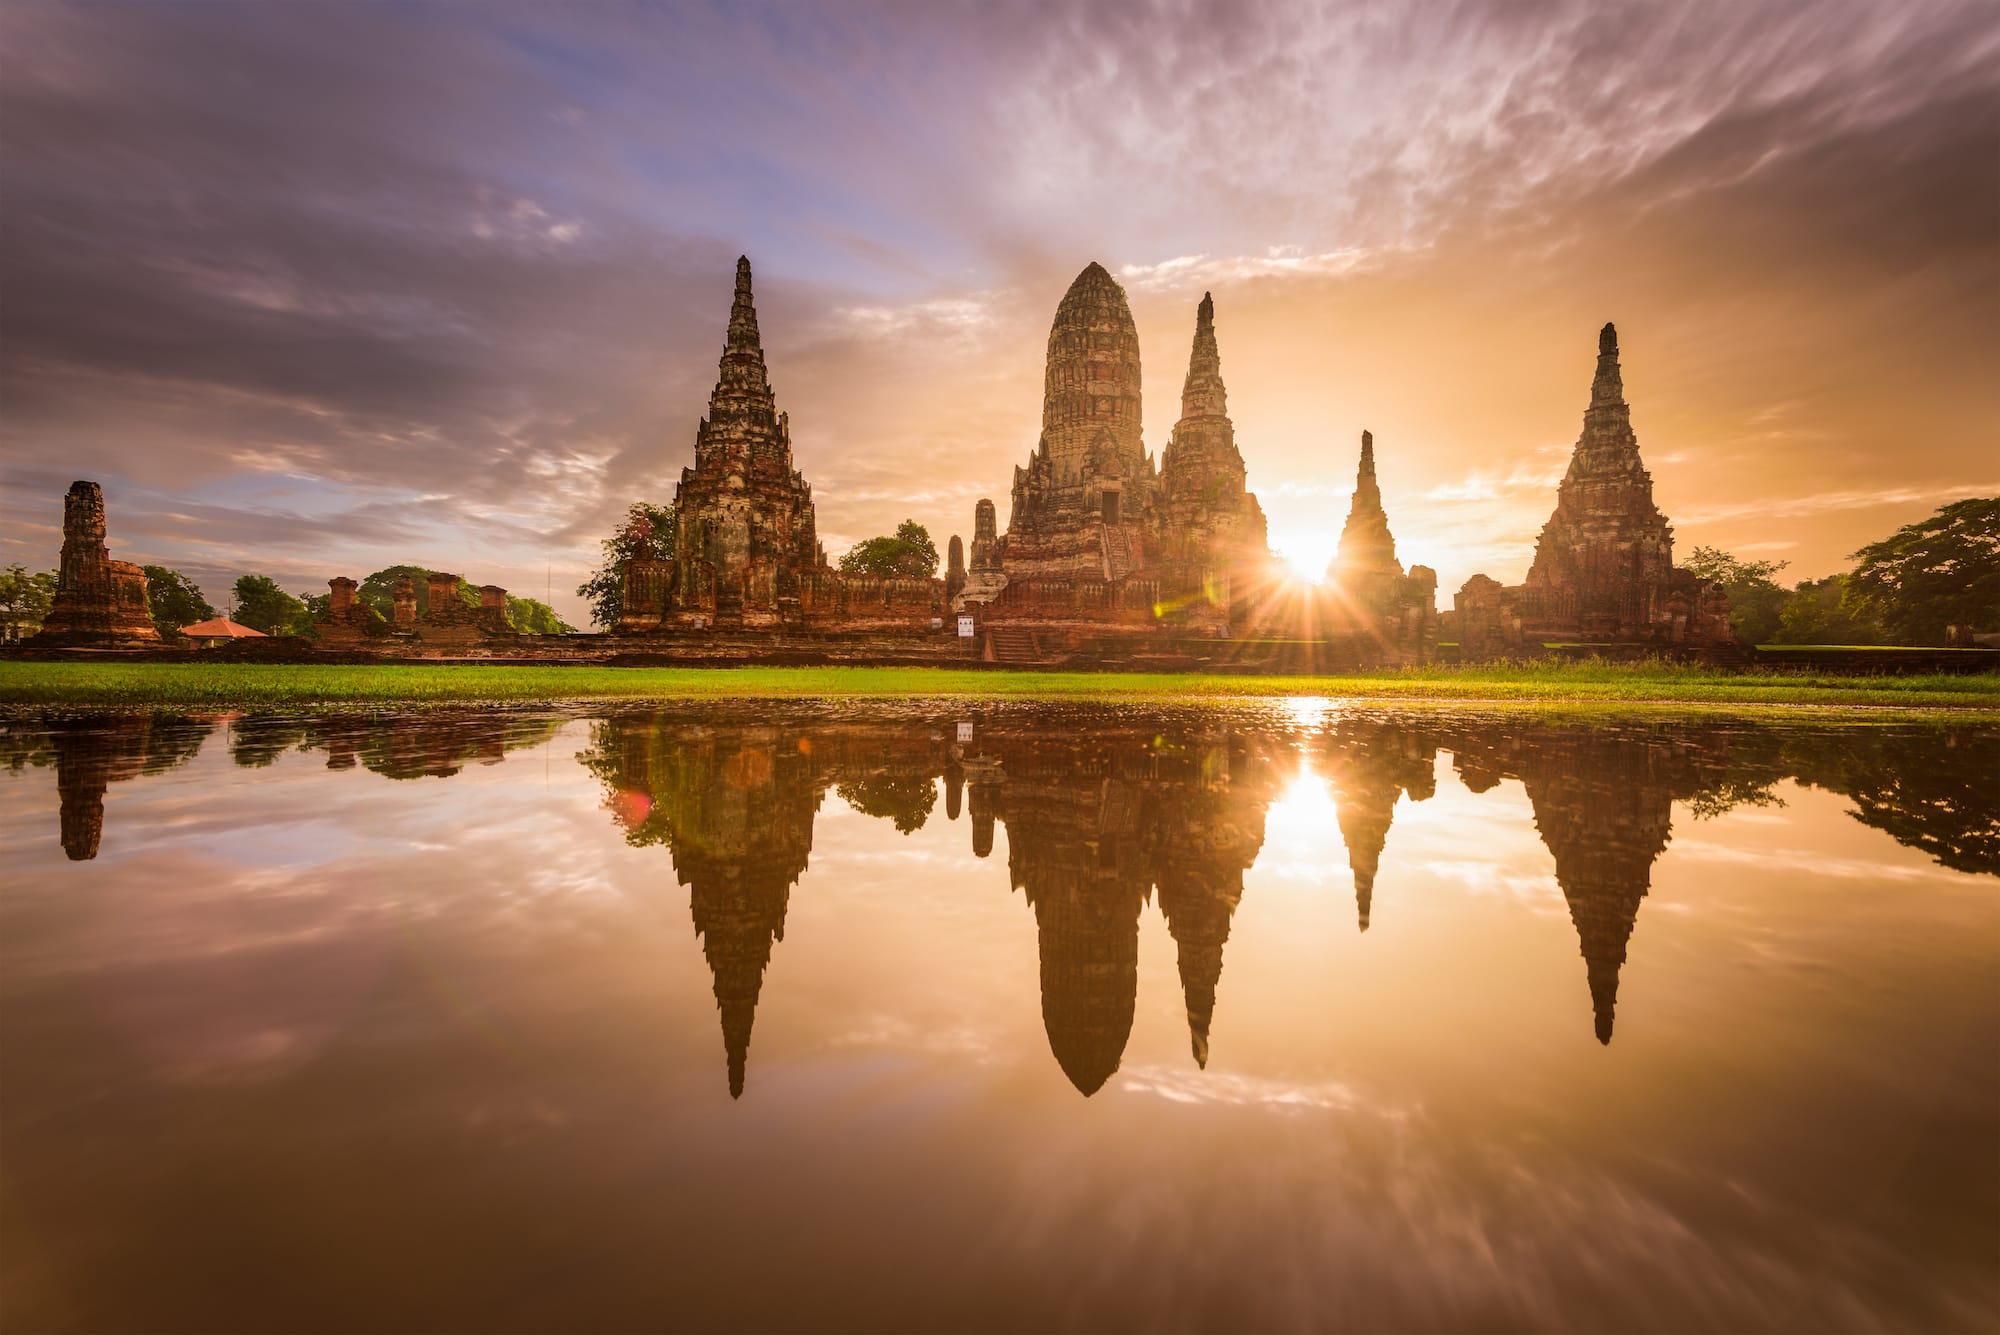 Backpacking Southeast Asia is at the top of our adventure bucketlist